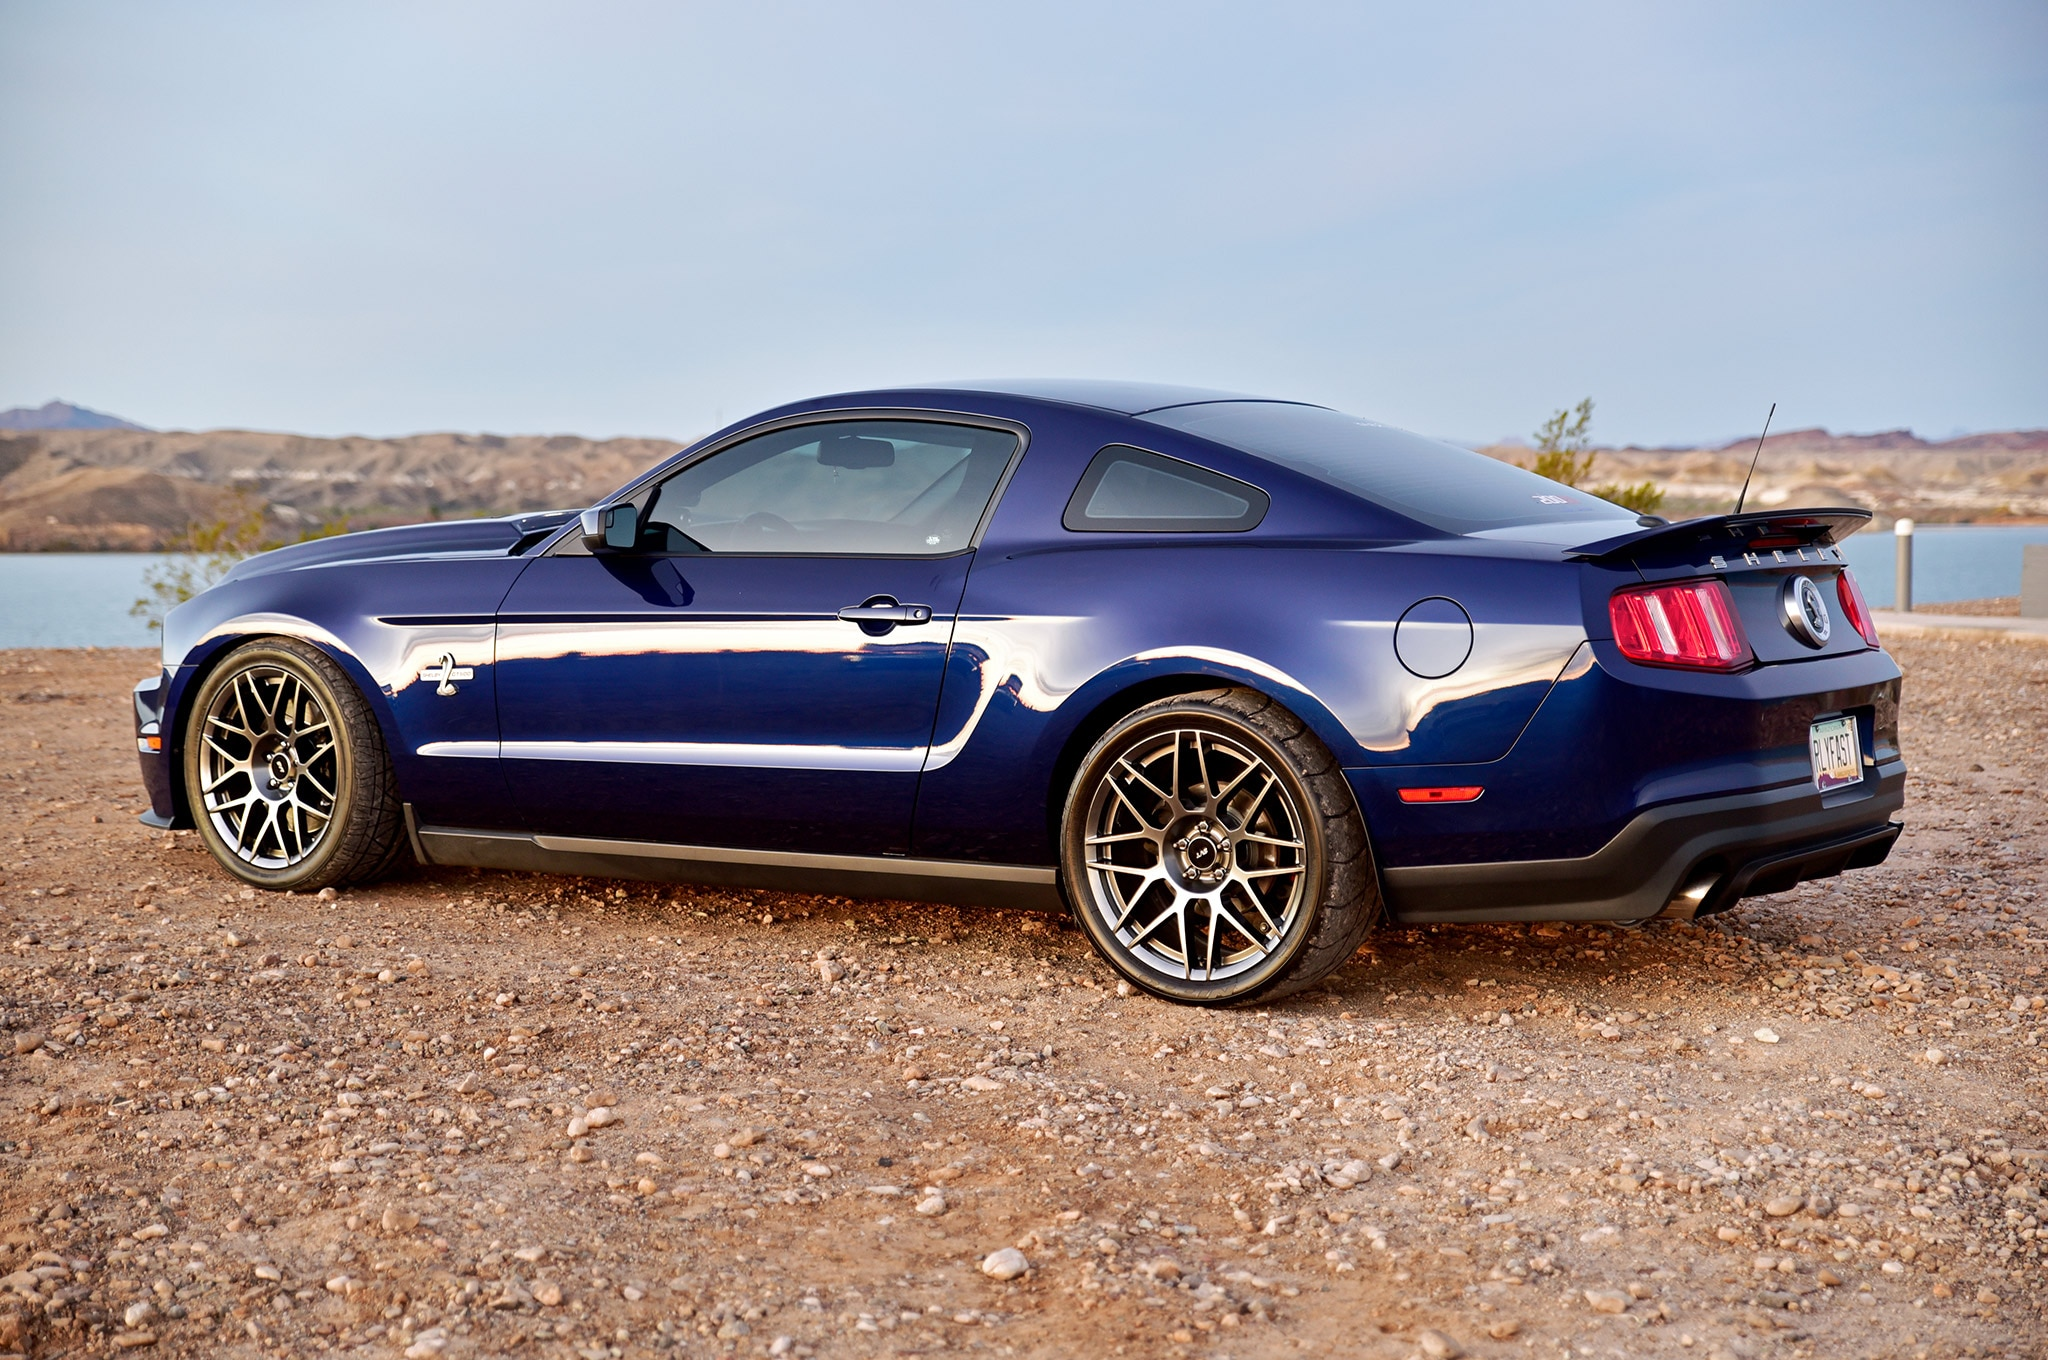 2012 Kona Blue Shelby Gt 500 Mustang 003 - Photo 129144207 ...